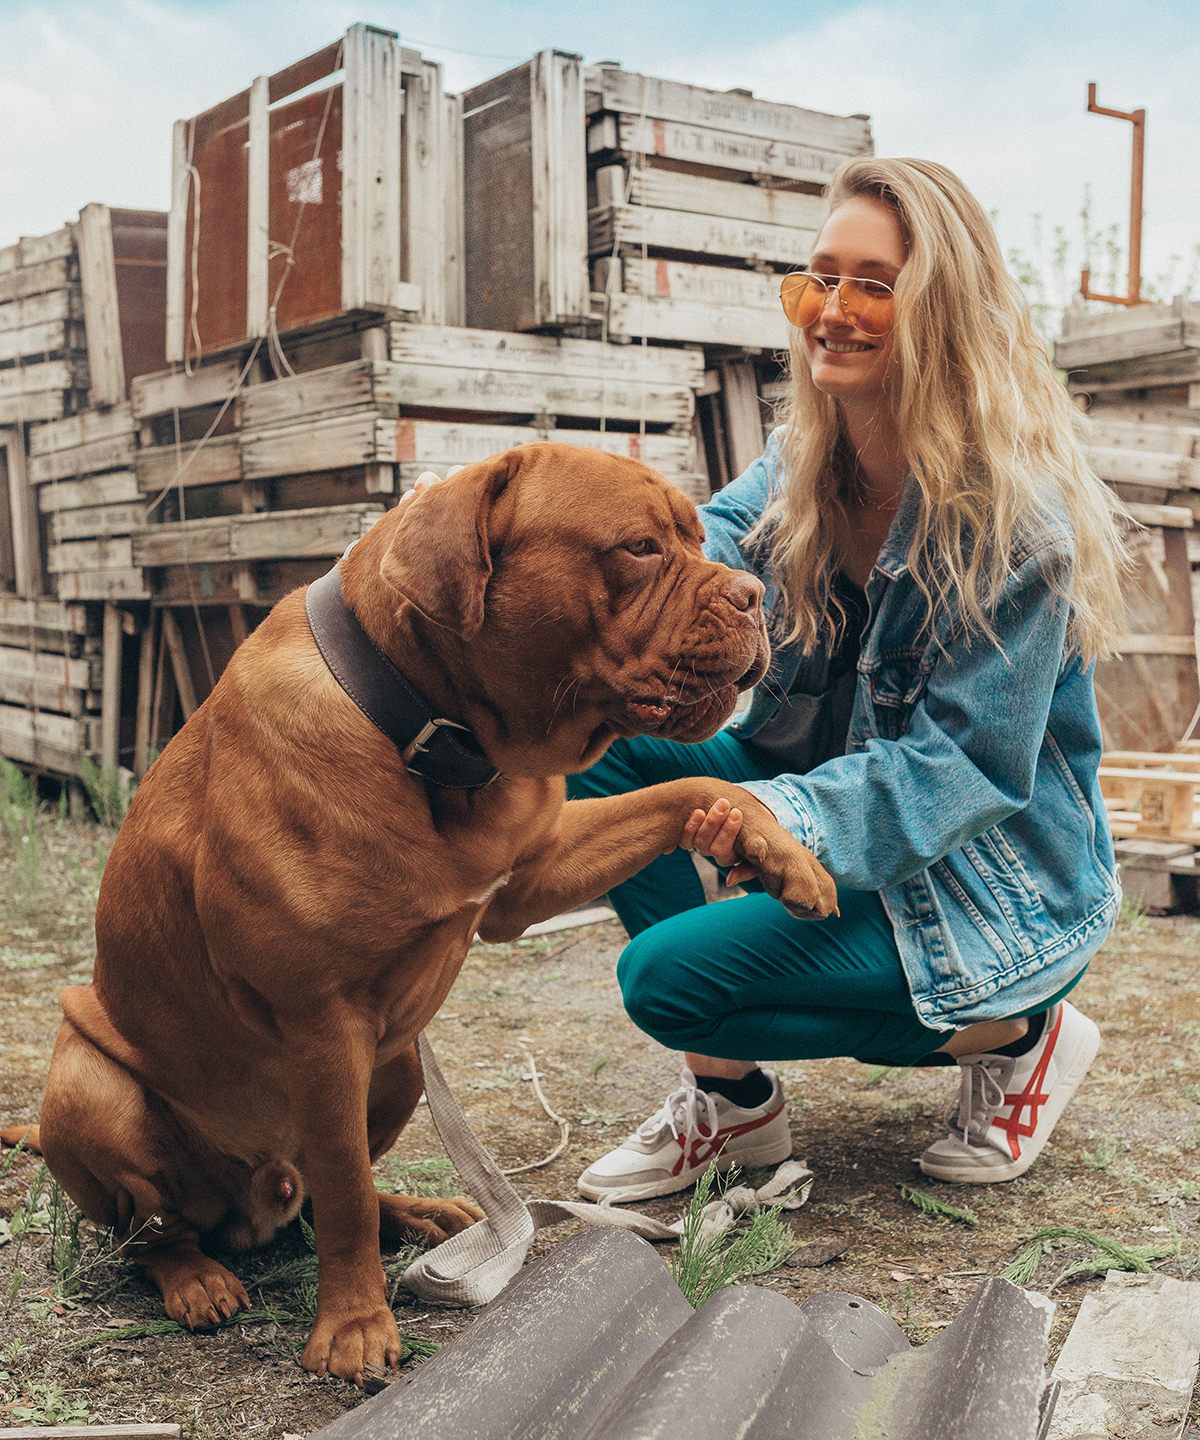 Influencer with dog